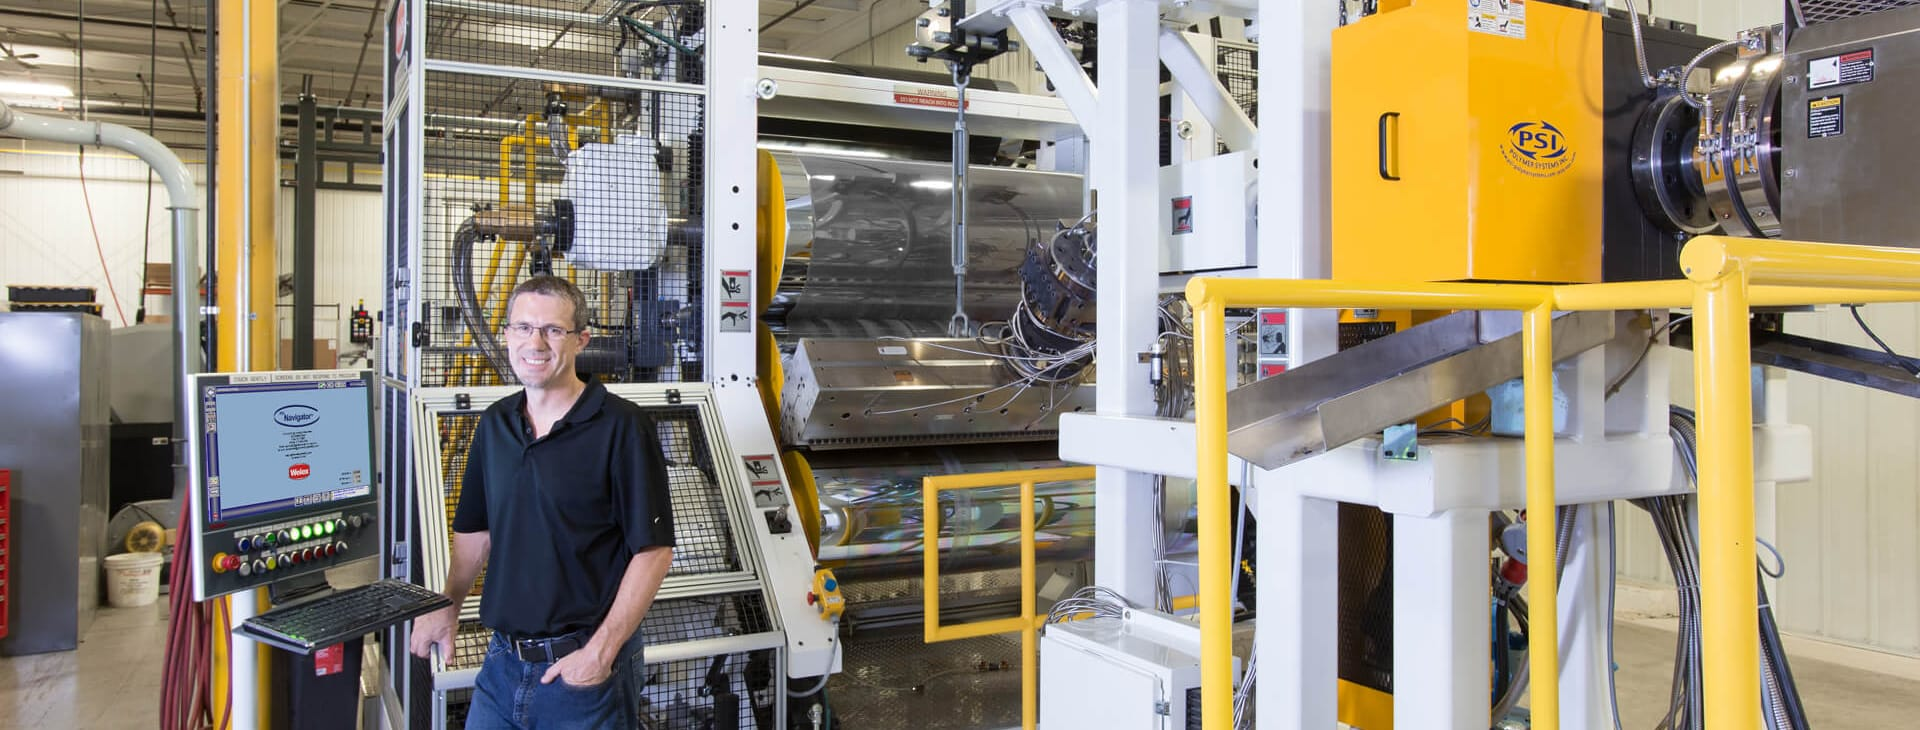 man standing in front of his Graham Extrusion equipment for parts and maintenance services photo